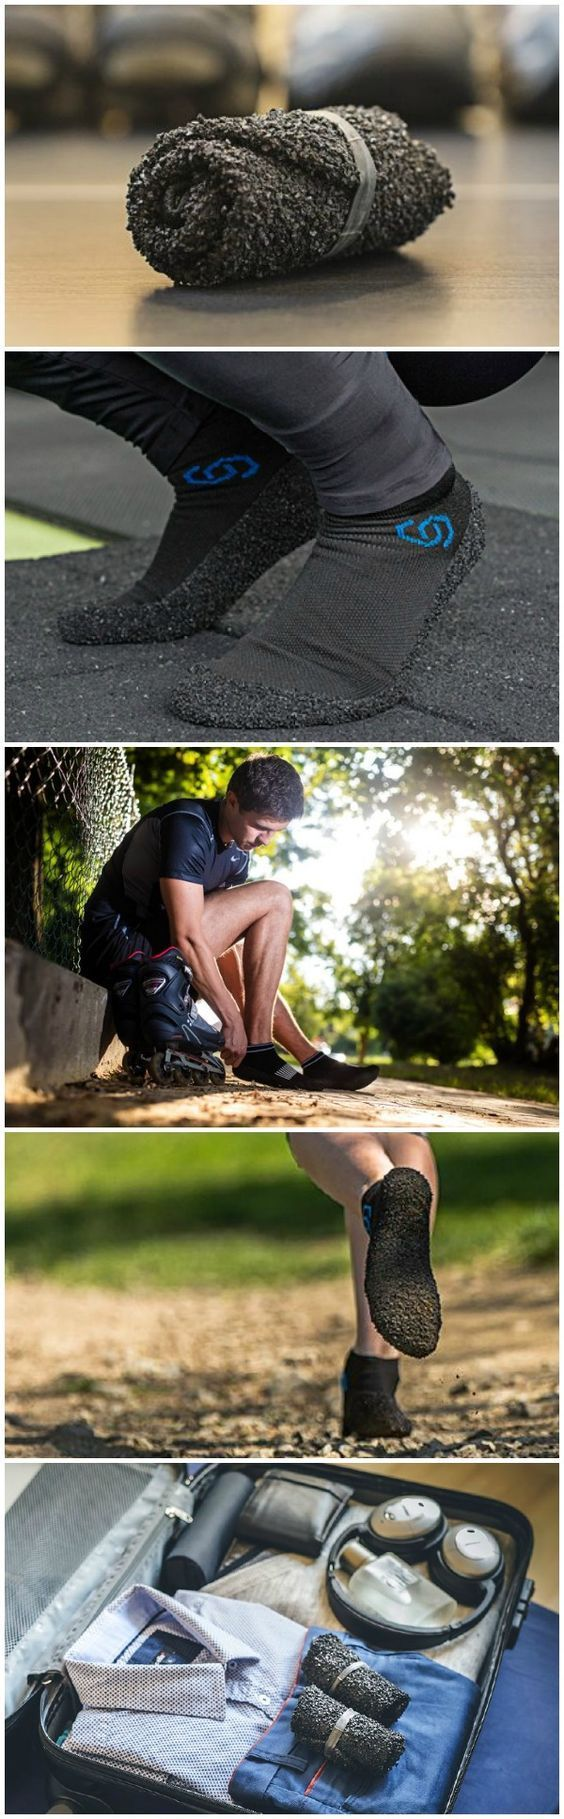 Skinners are the revolutionary ultra-portable footwear that you can roll up like socks but provide protection even from broken glass and durable enough even for a marathon.